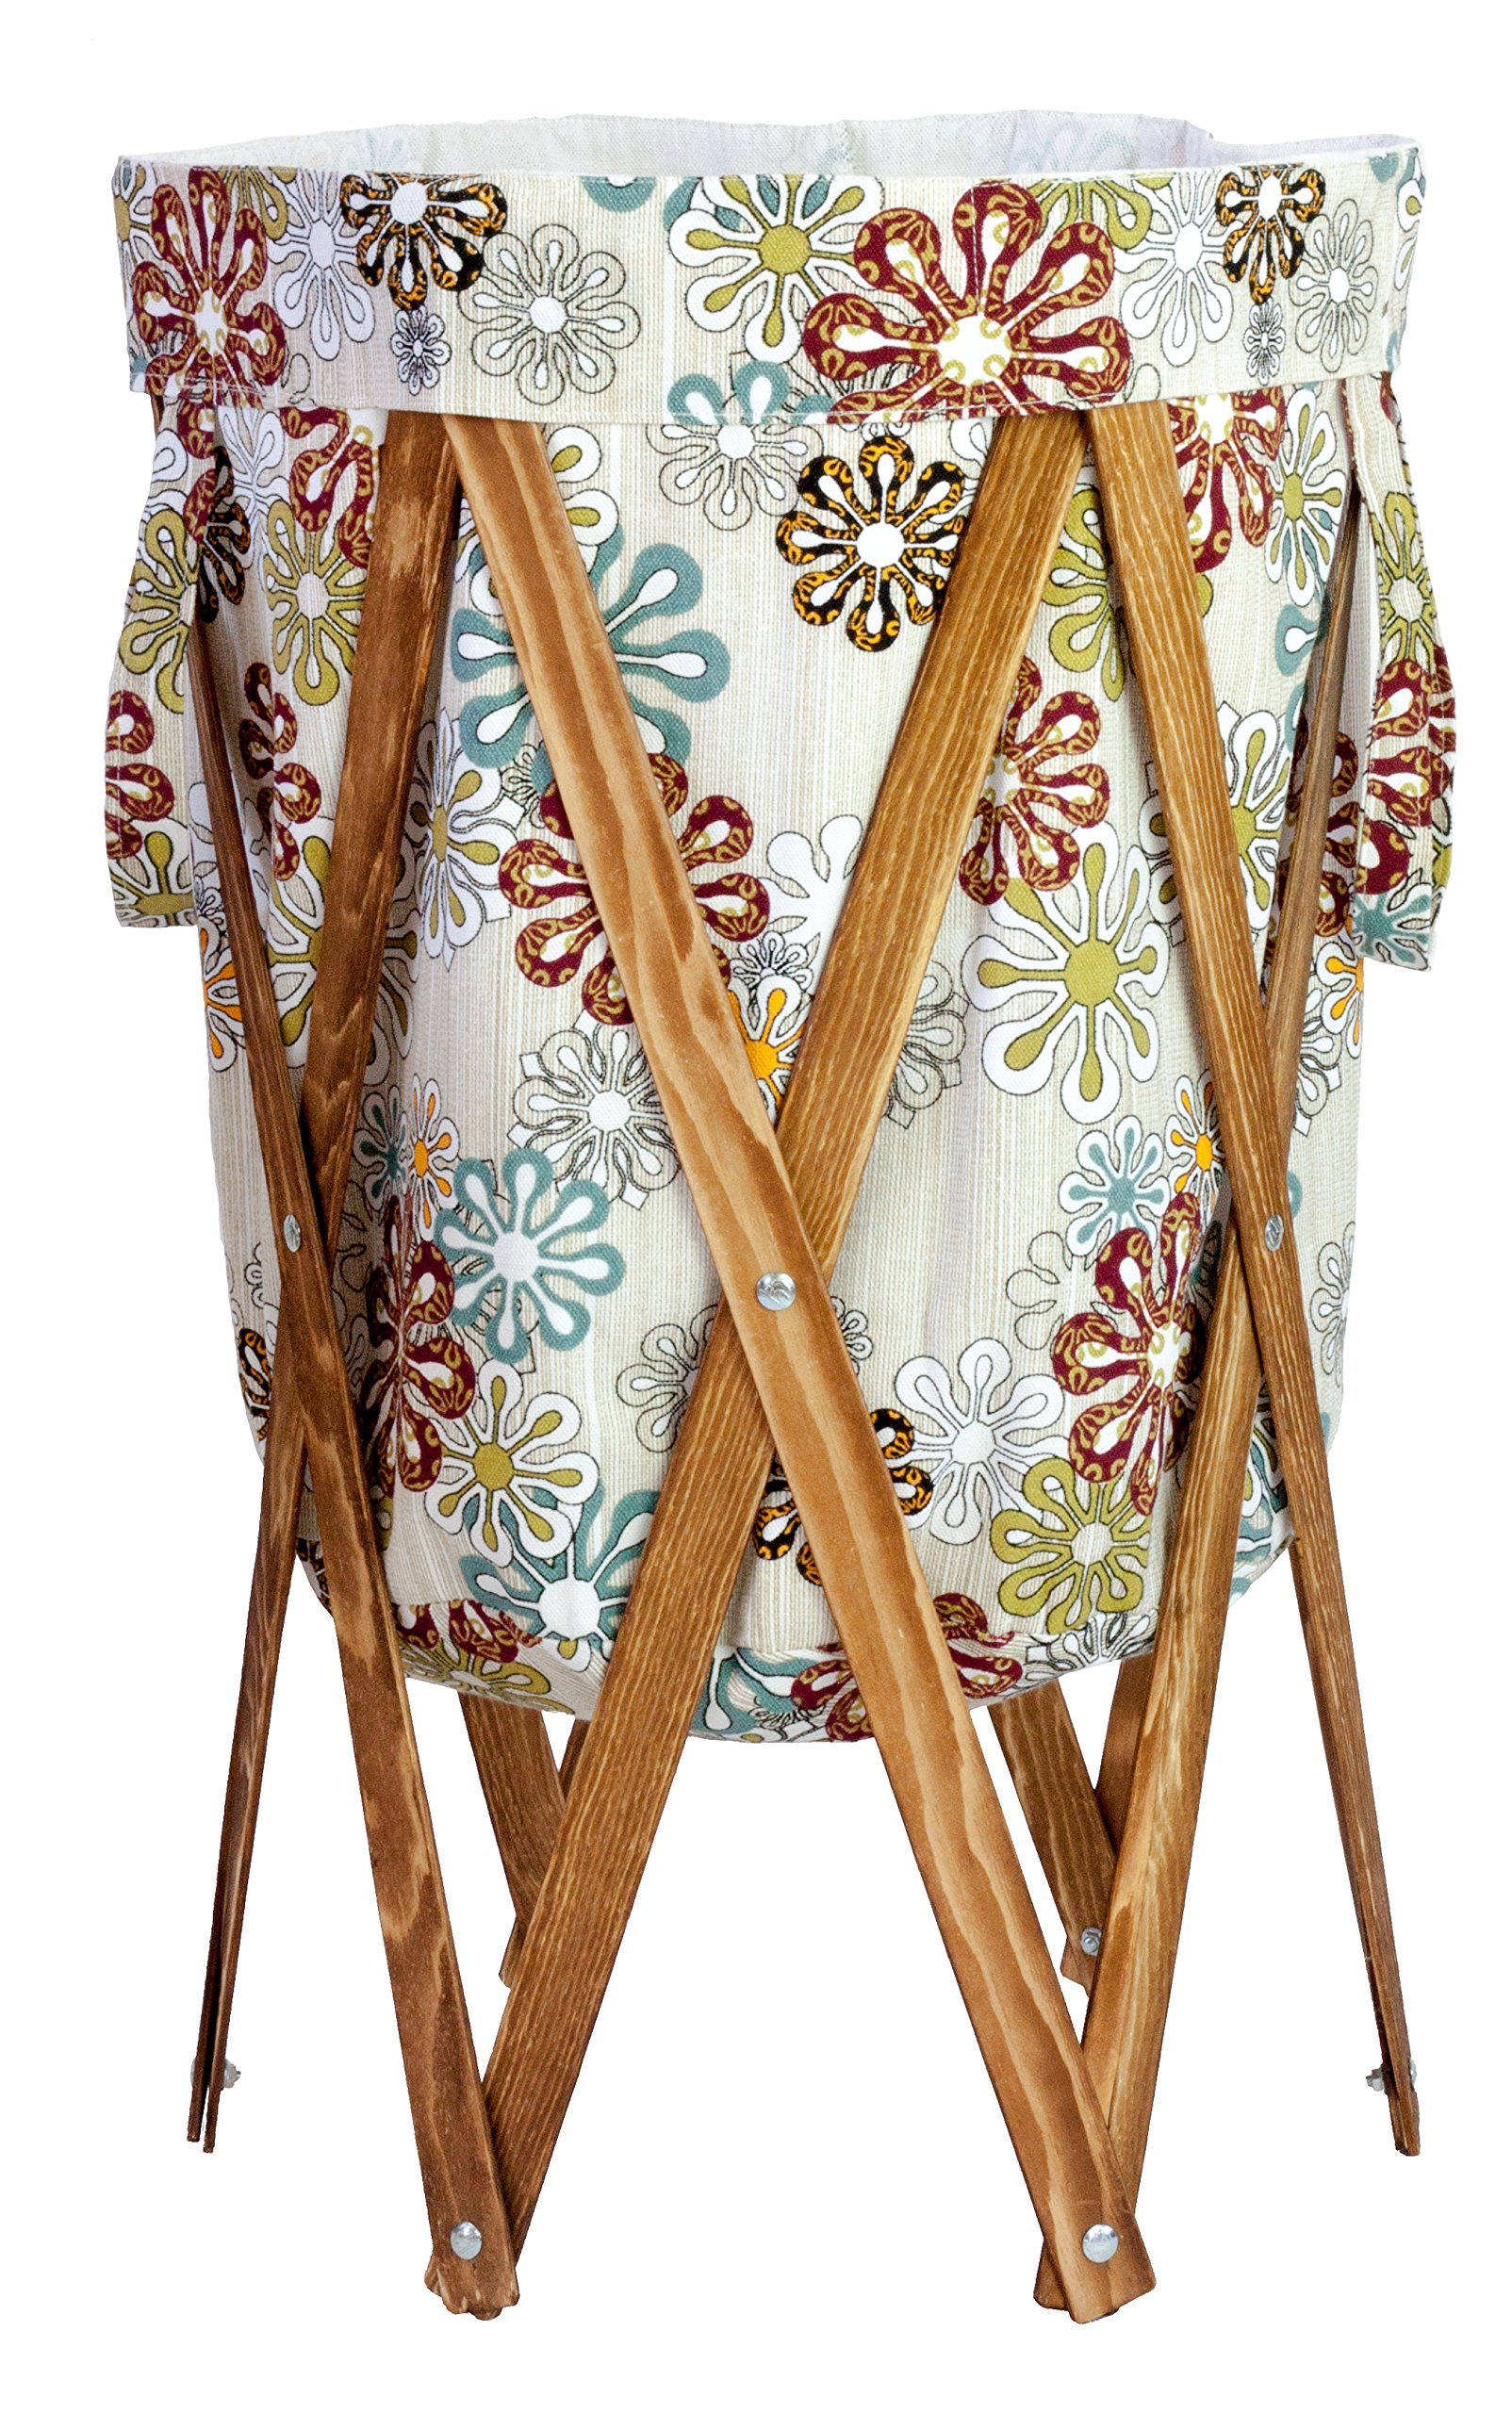 MAX + RAE Collapsible Laundry Hamper with Stained Wood Frame | Dirty Clothes Storage | Removable Fabric Bag with Handles, Easy to Carry and Clean | Nursery, Kids Bedroom, Bathroom (Flower Art 2) by MAX + RAE (Image #1)